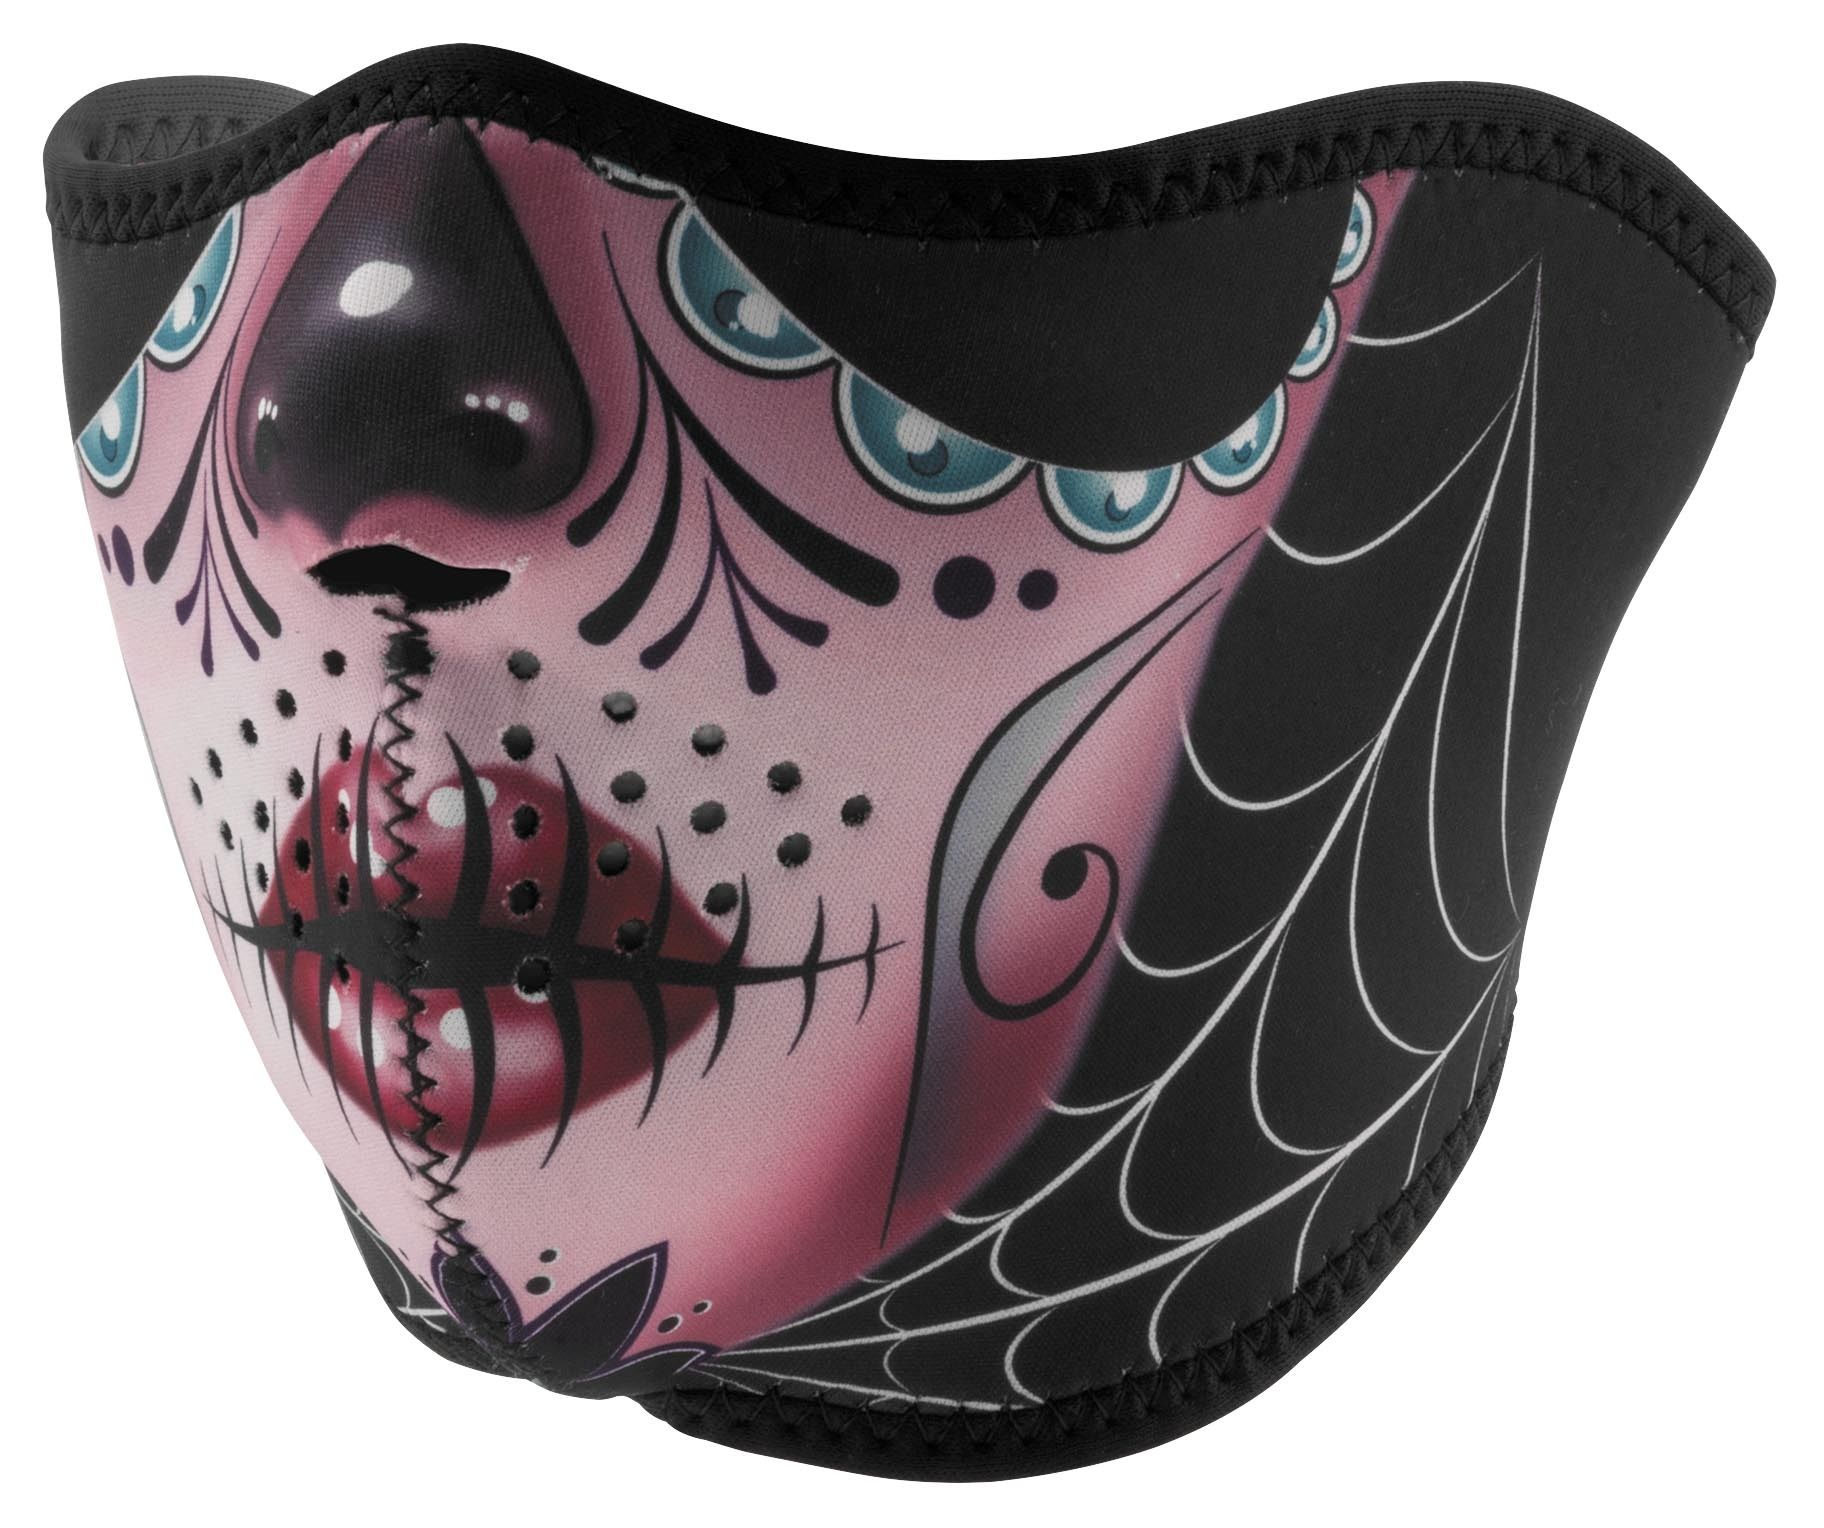 Zanheadgear Skull Neoprene Half Mask Cycle Gear